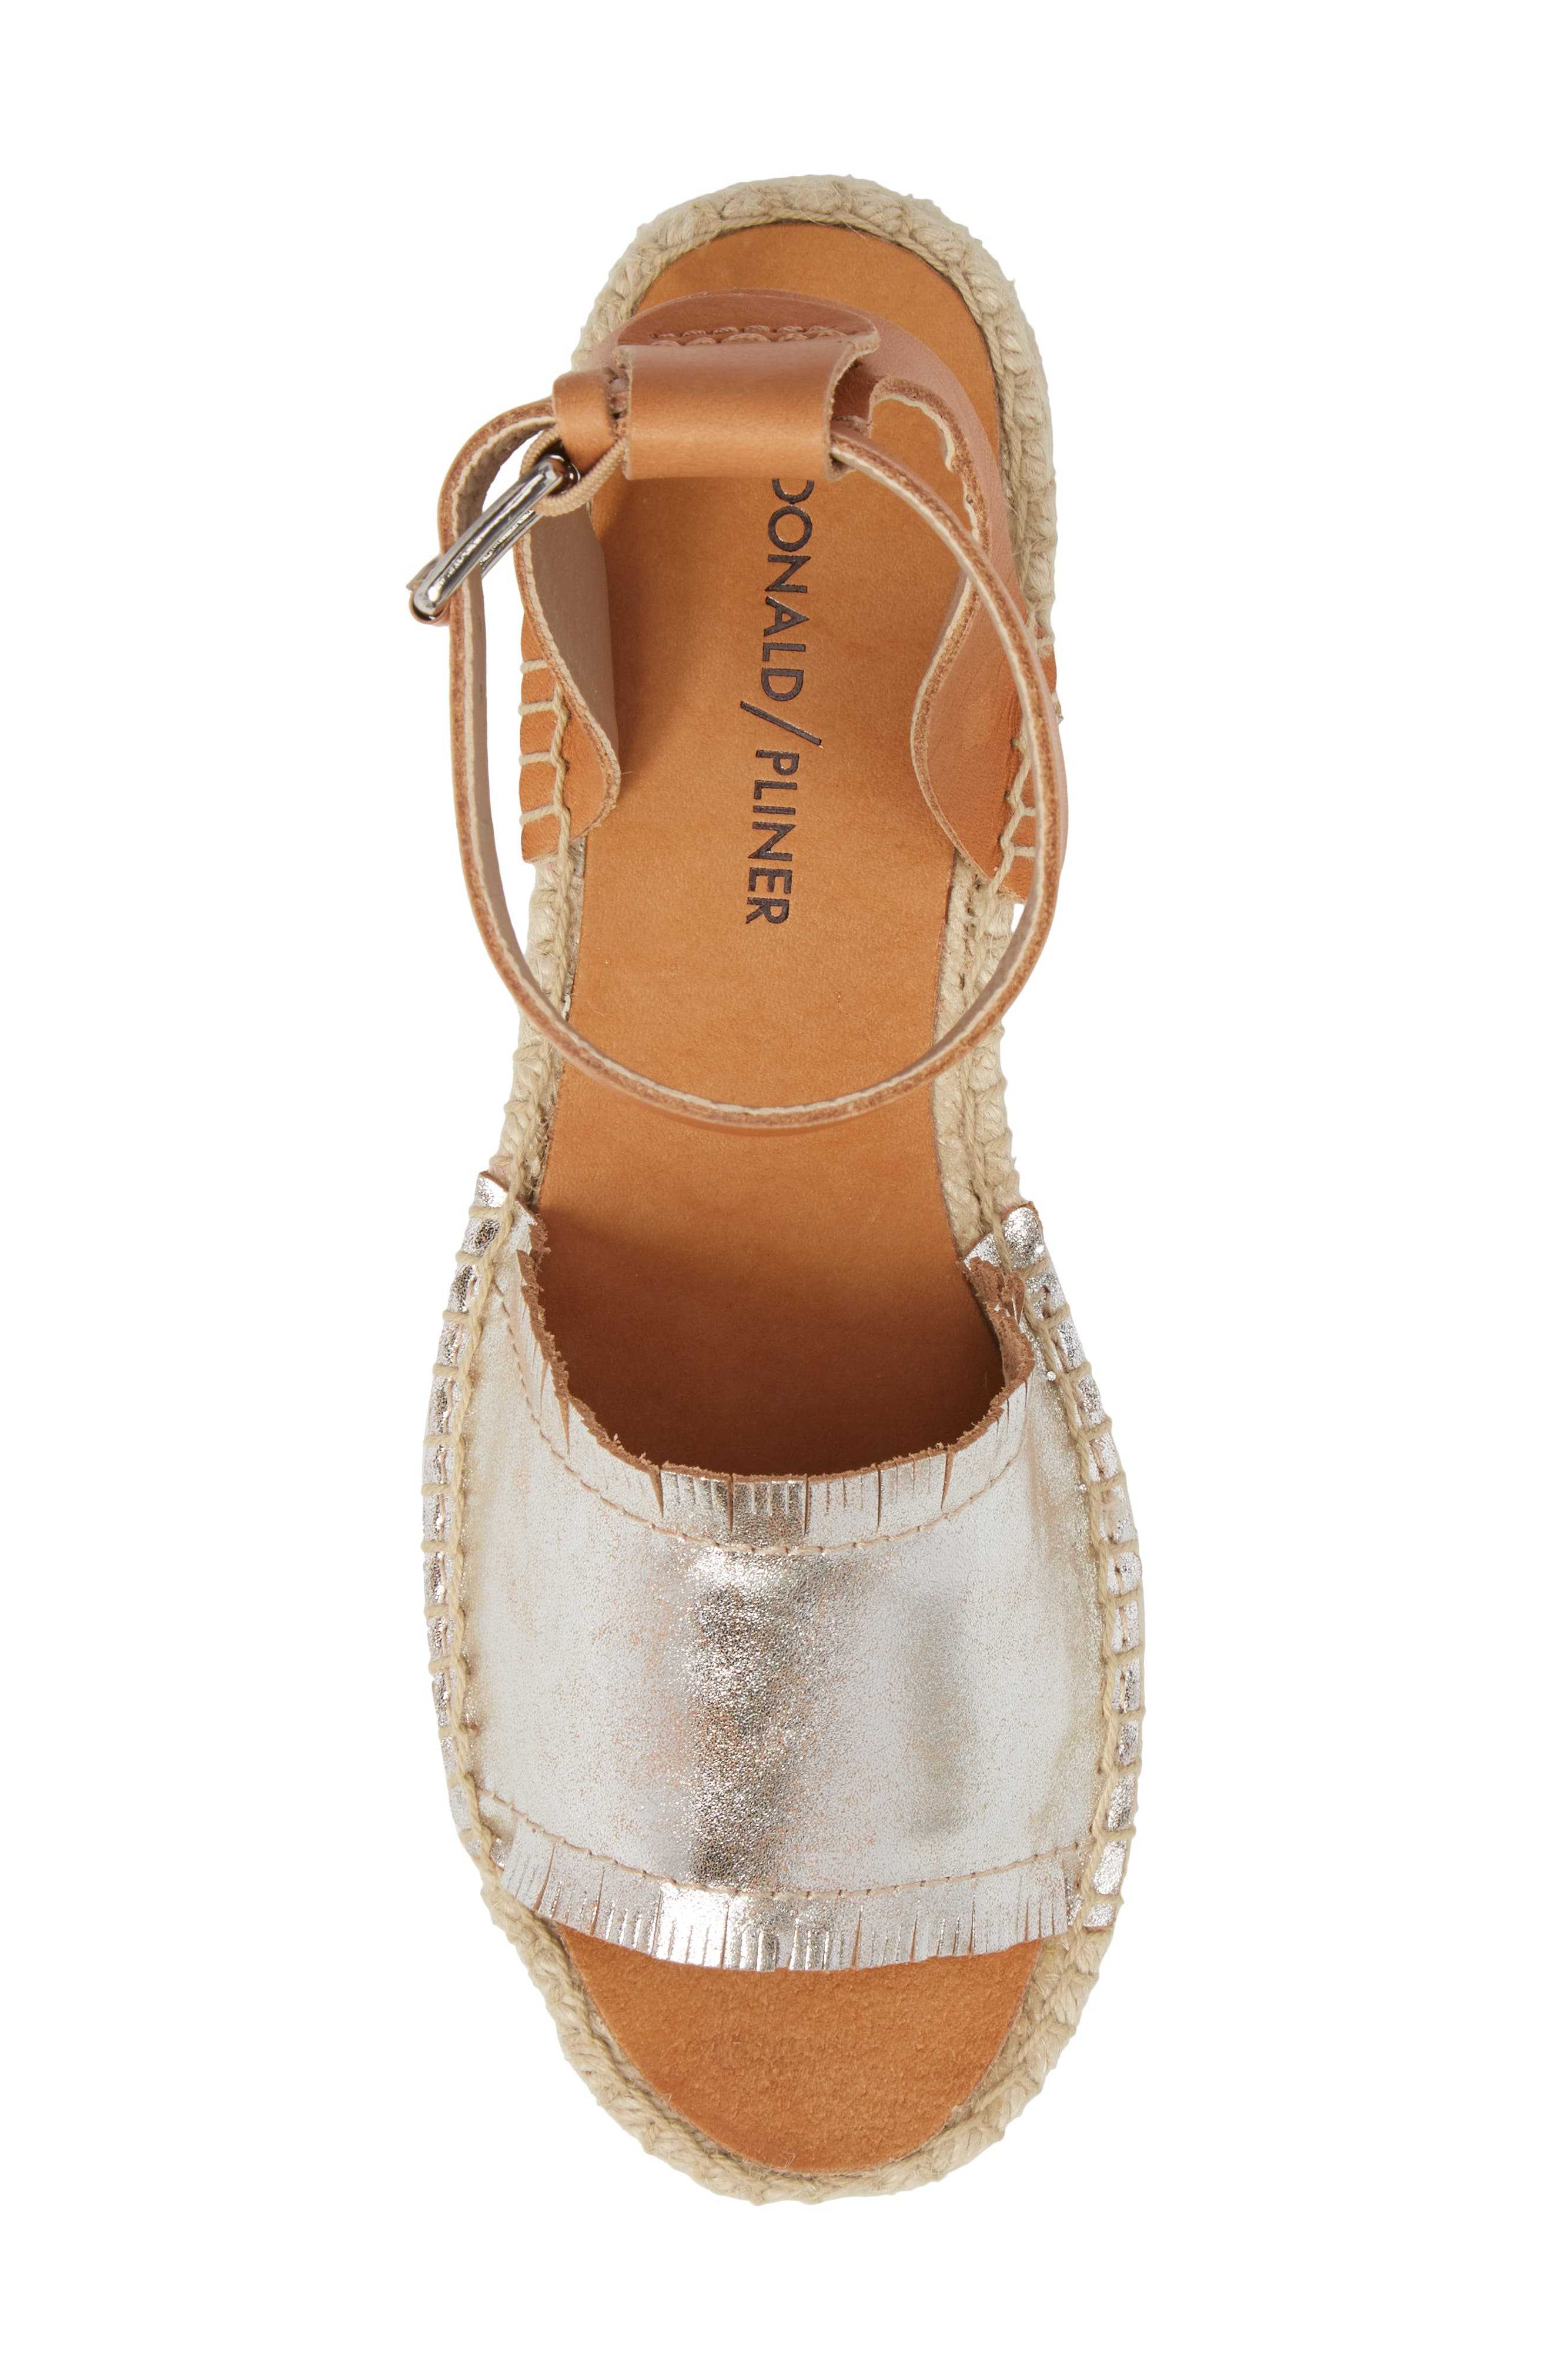 Rowen Espadrille Sandal,                             Alternate thumbnail 5, color,                             Silver Leather